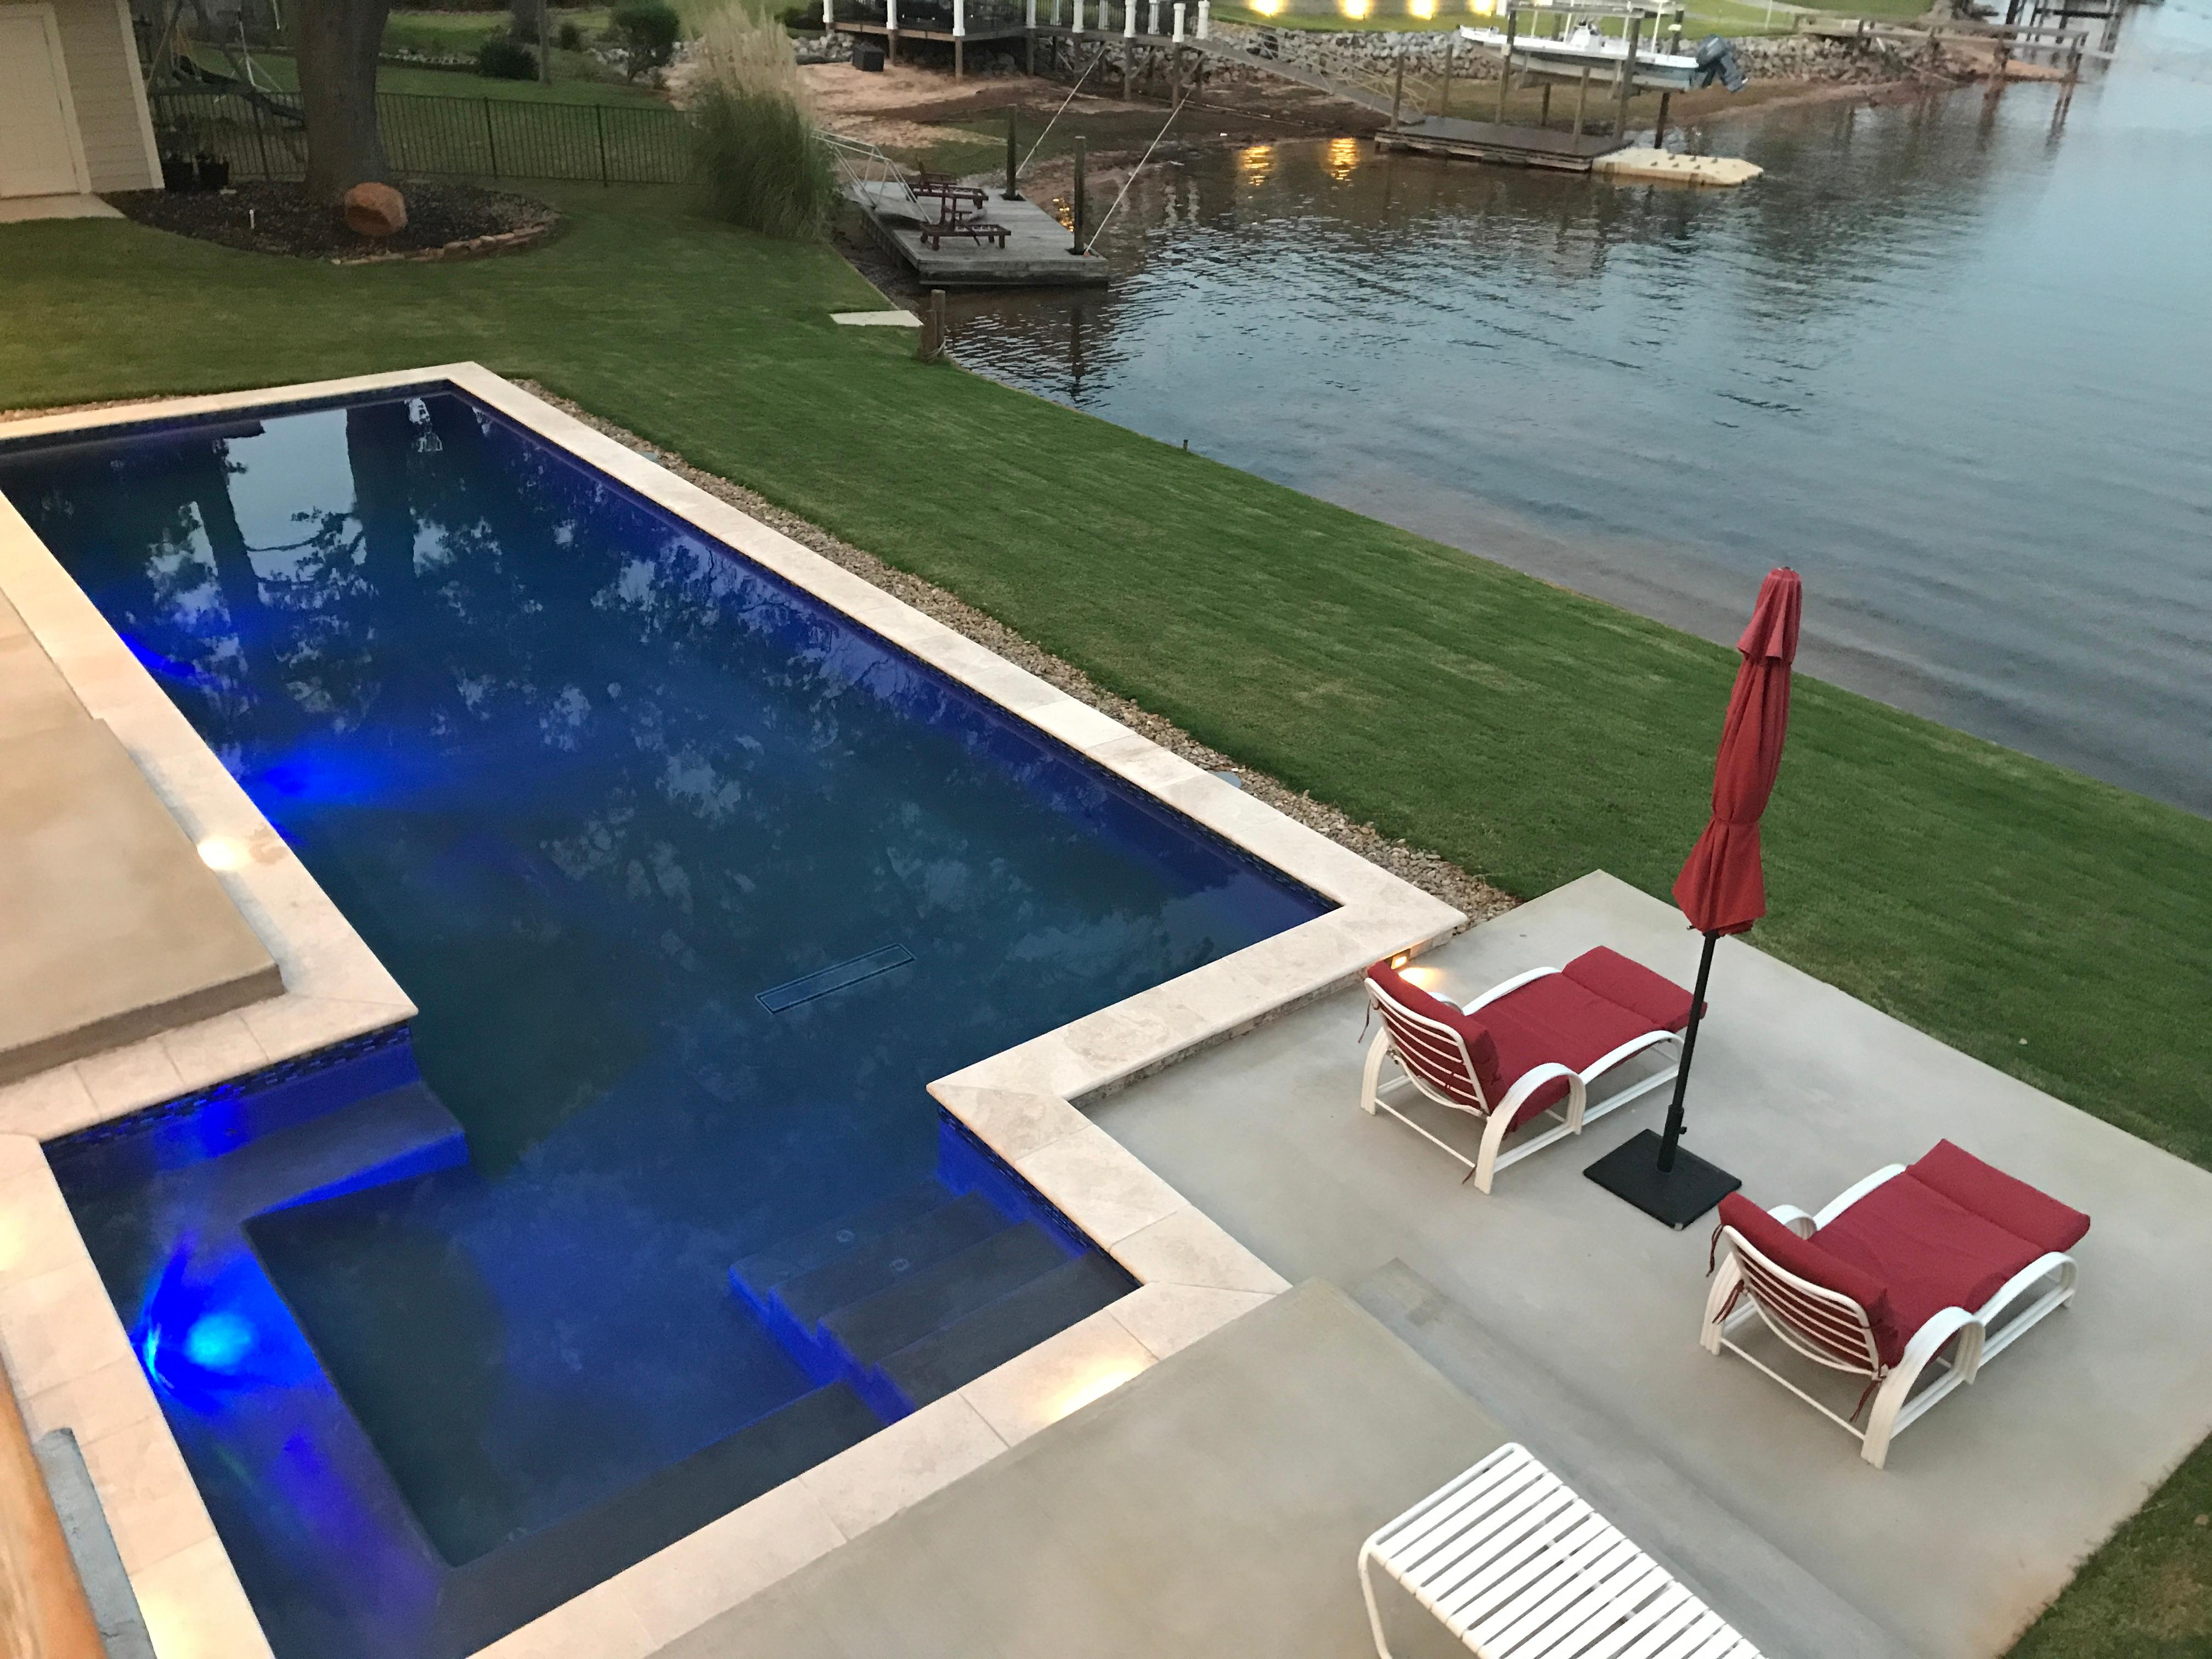 Crystal pools llc in columbia sc swimming pool for Pool dealers